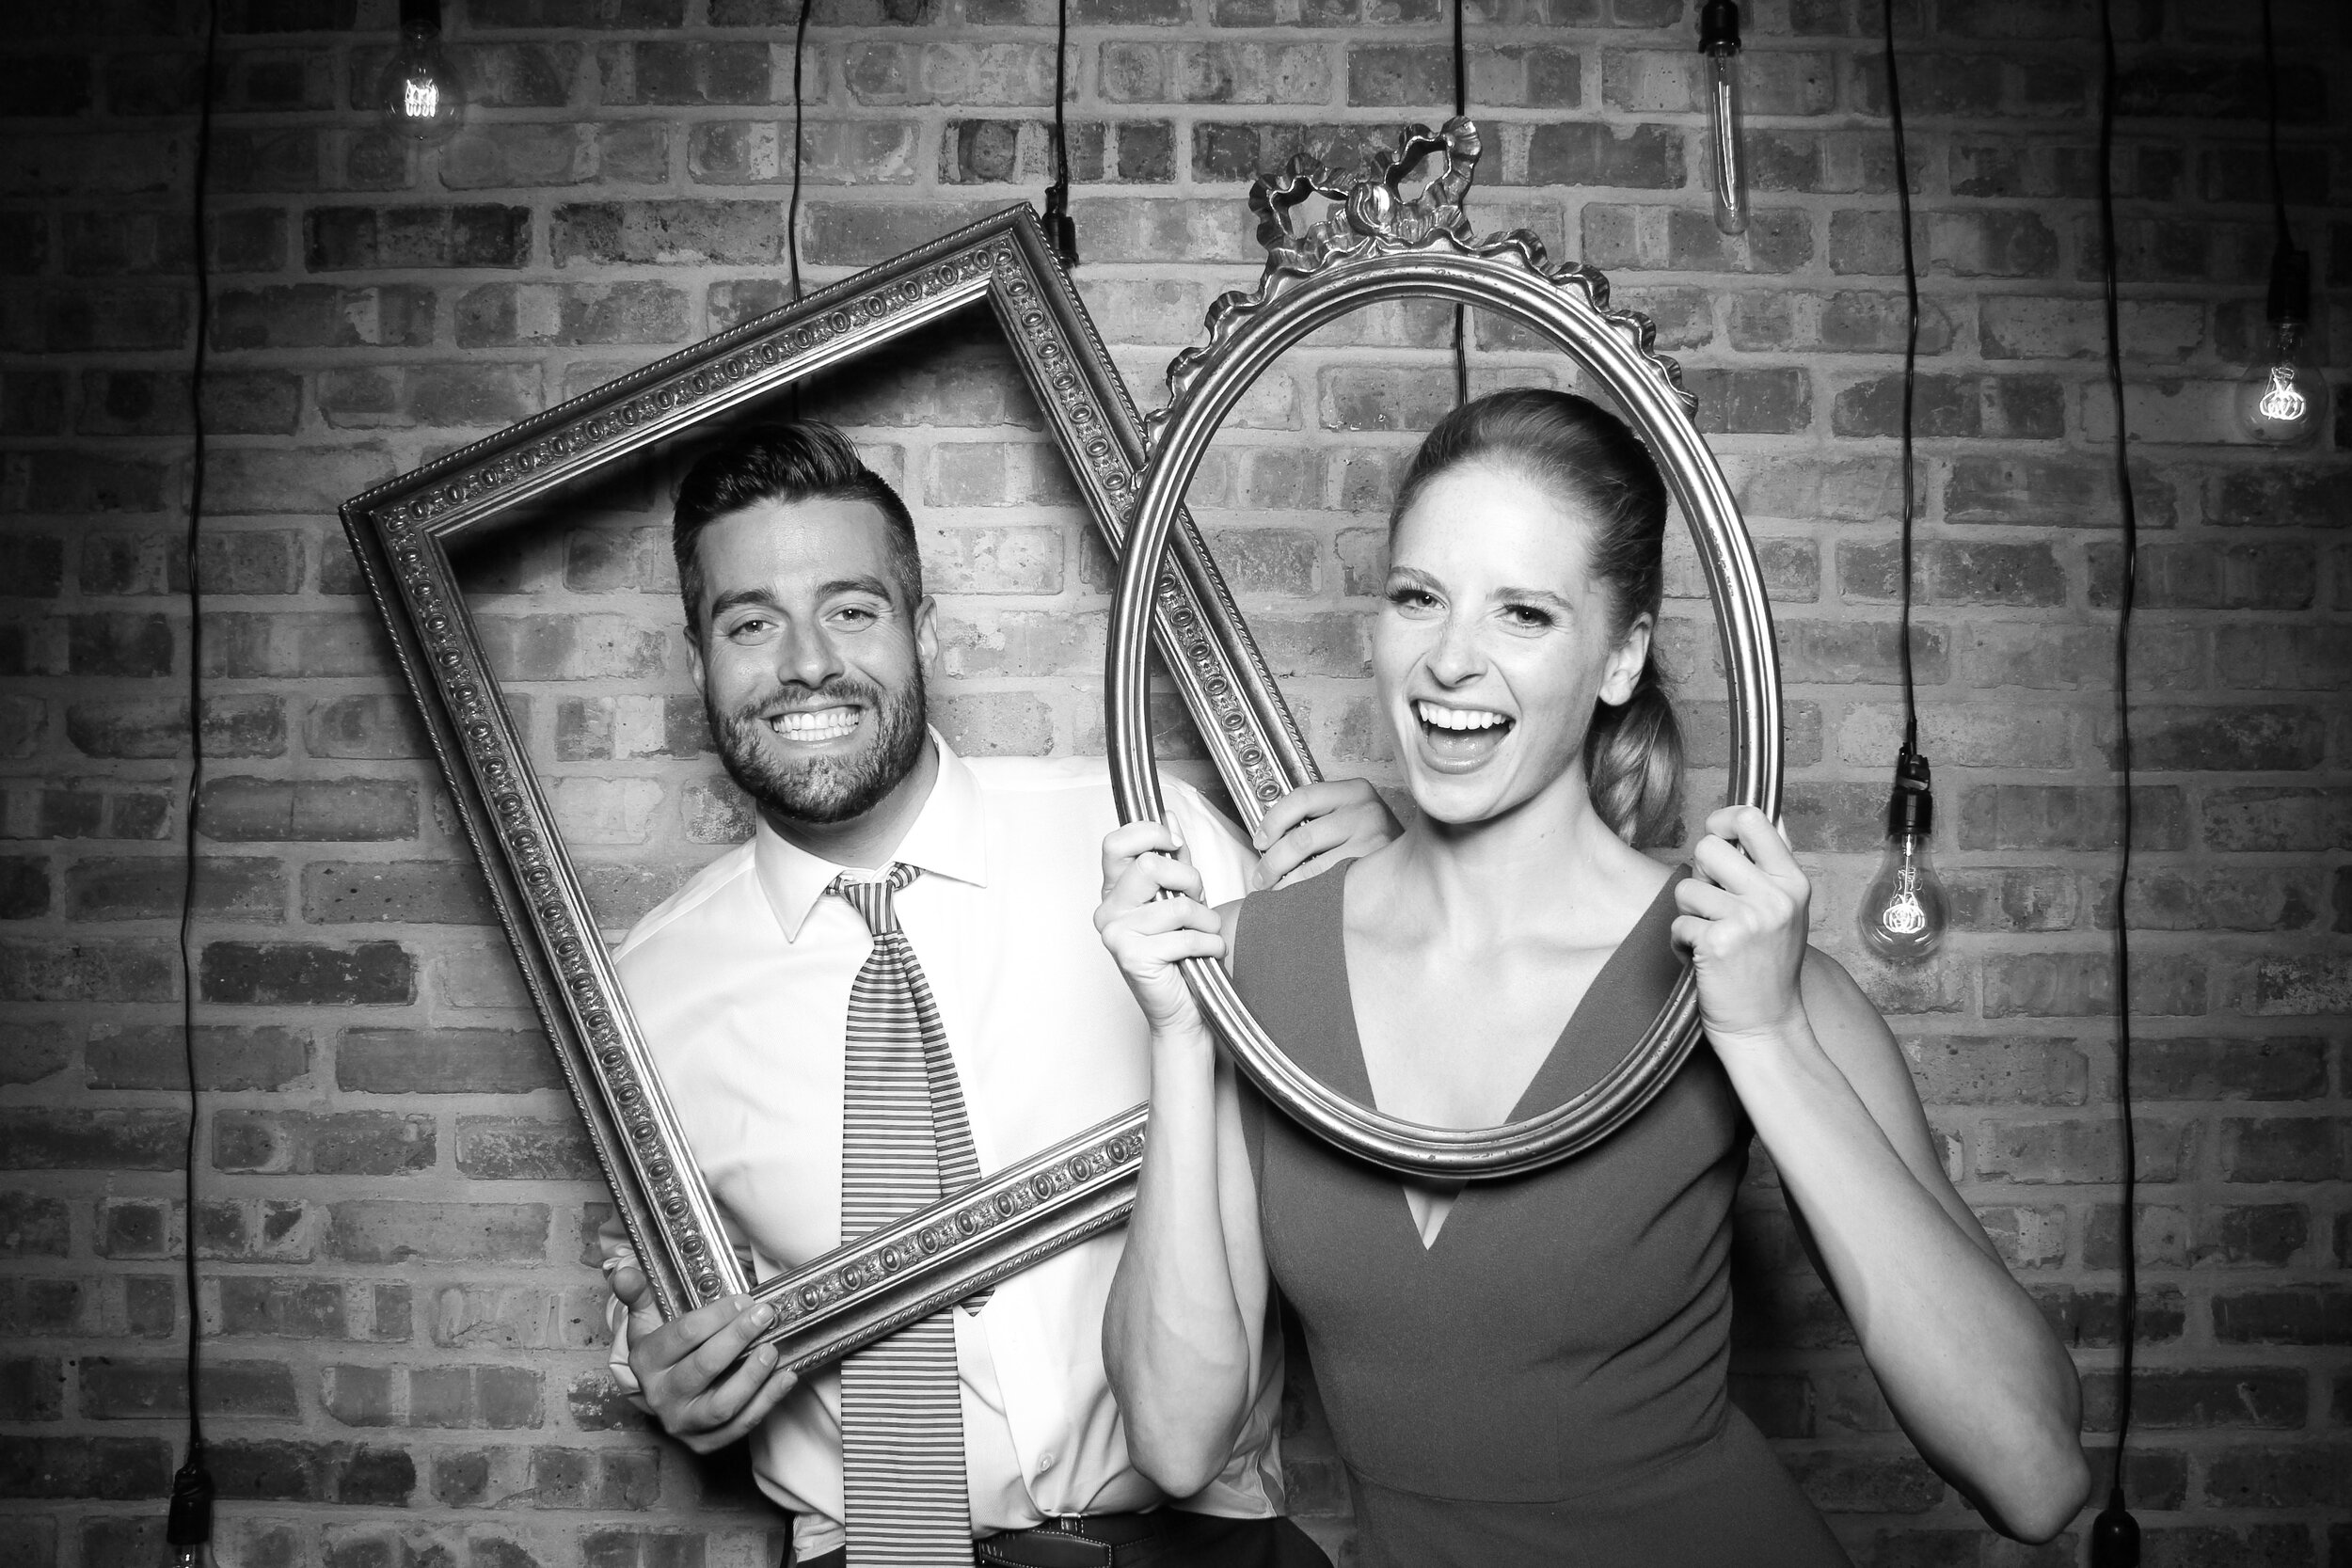 Chicago_Vintage_Wedding_Photobooth_Morgan_Manufacturing_24.jpg